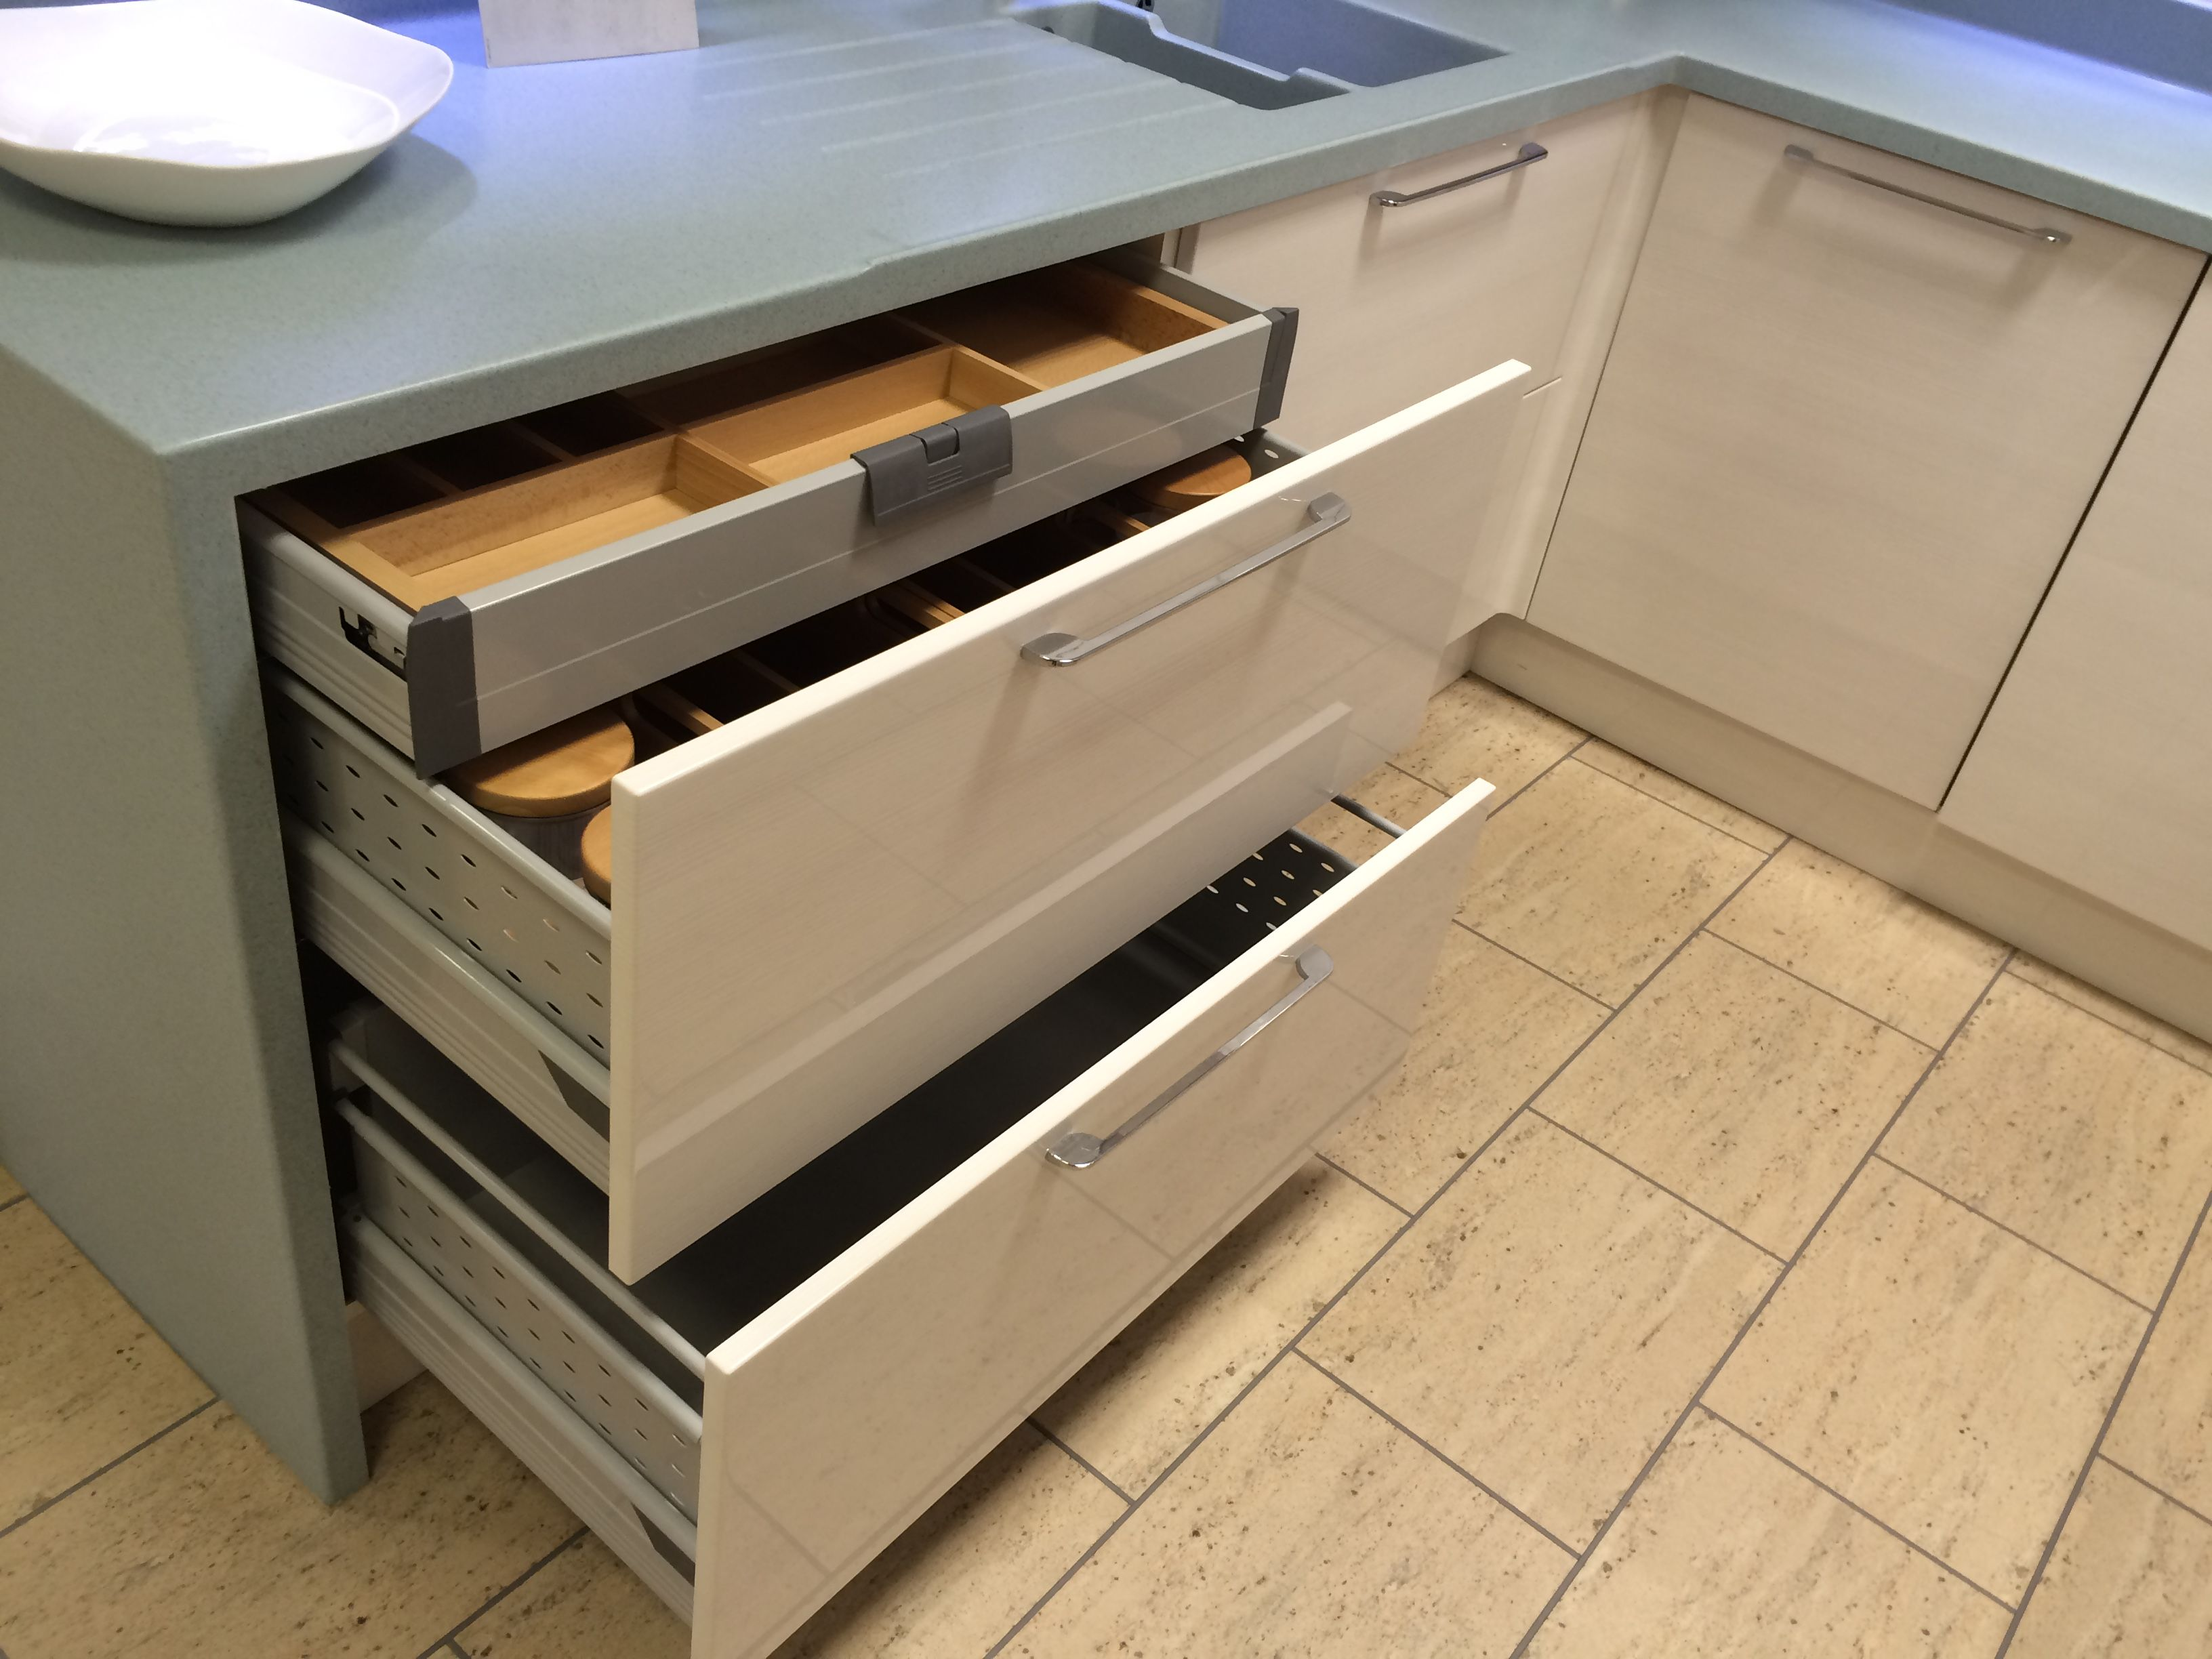 Wickes love this wide 'drawer in drawer' system. I want